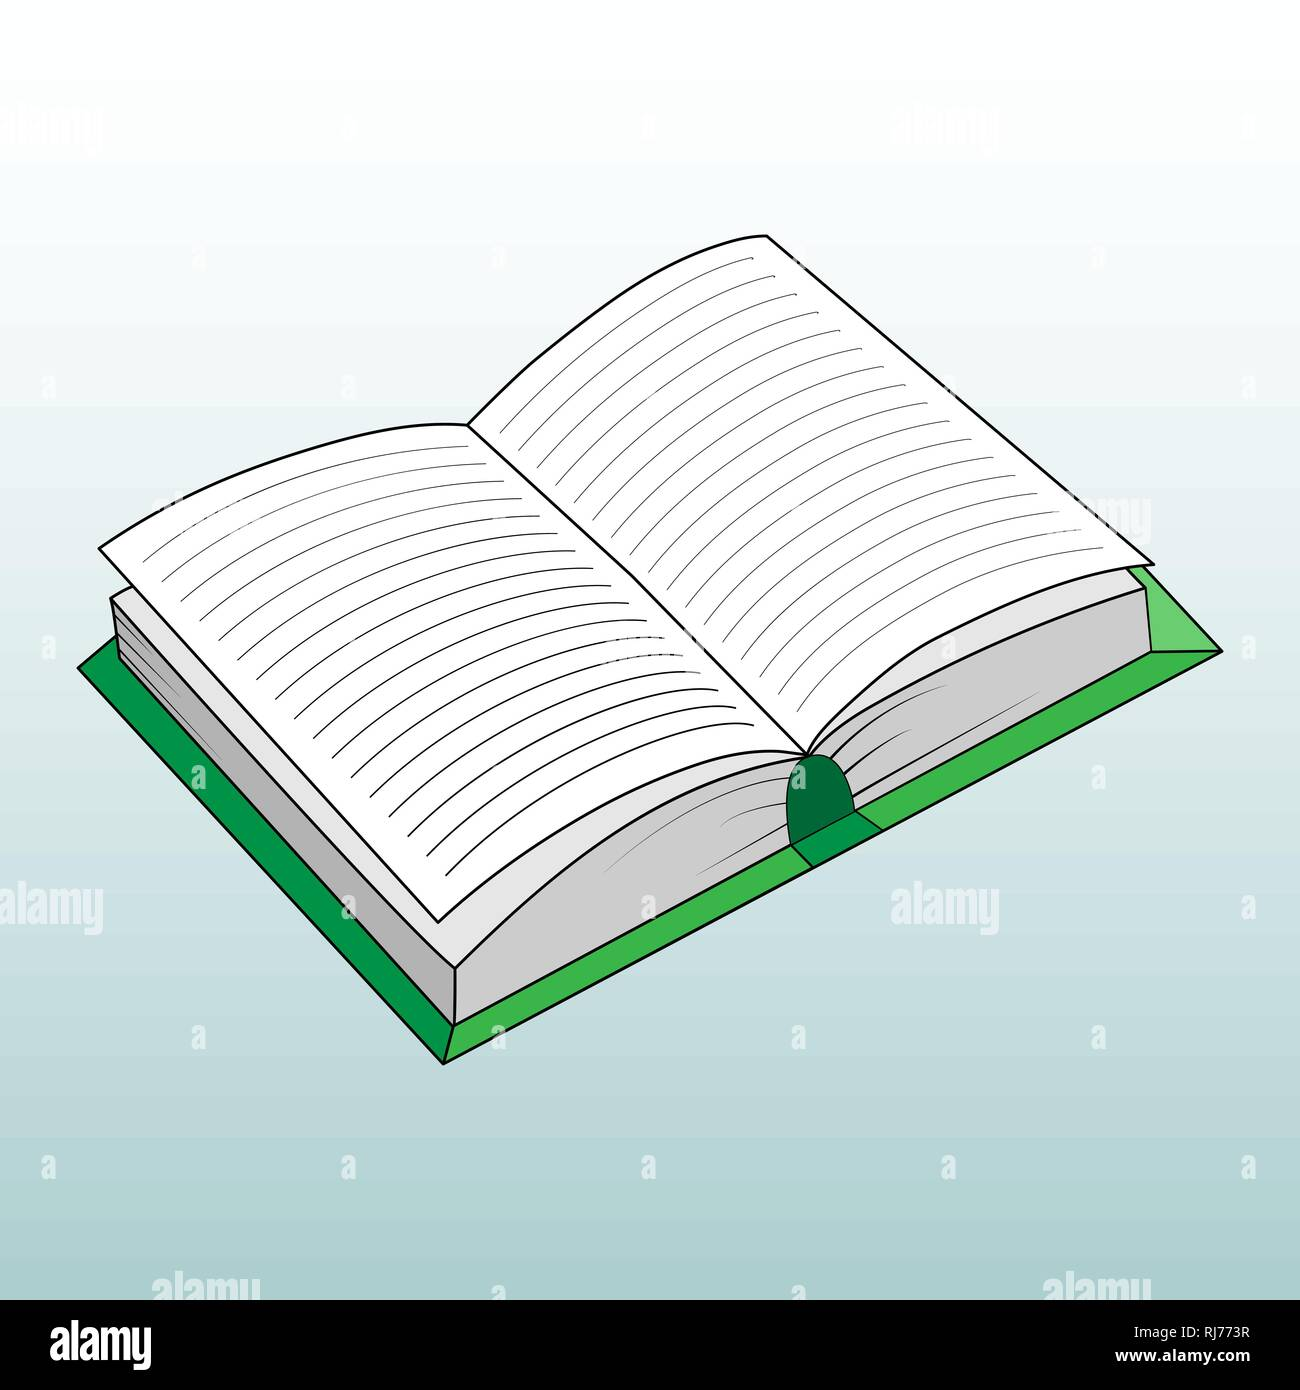 Color illustration of an open book, simple drawing Stock